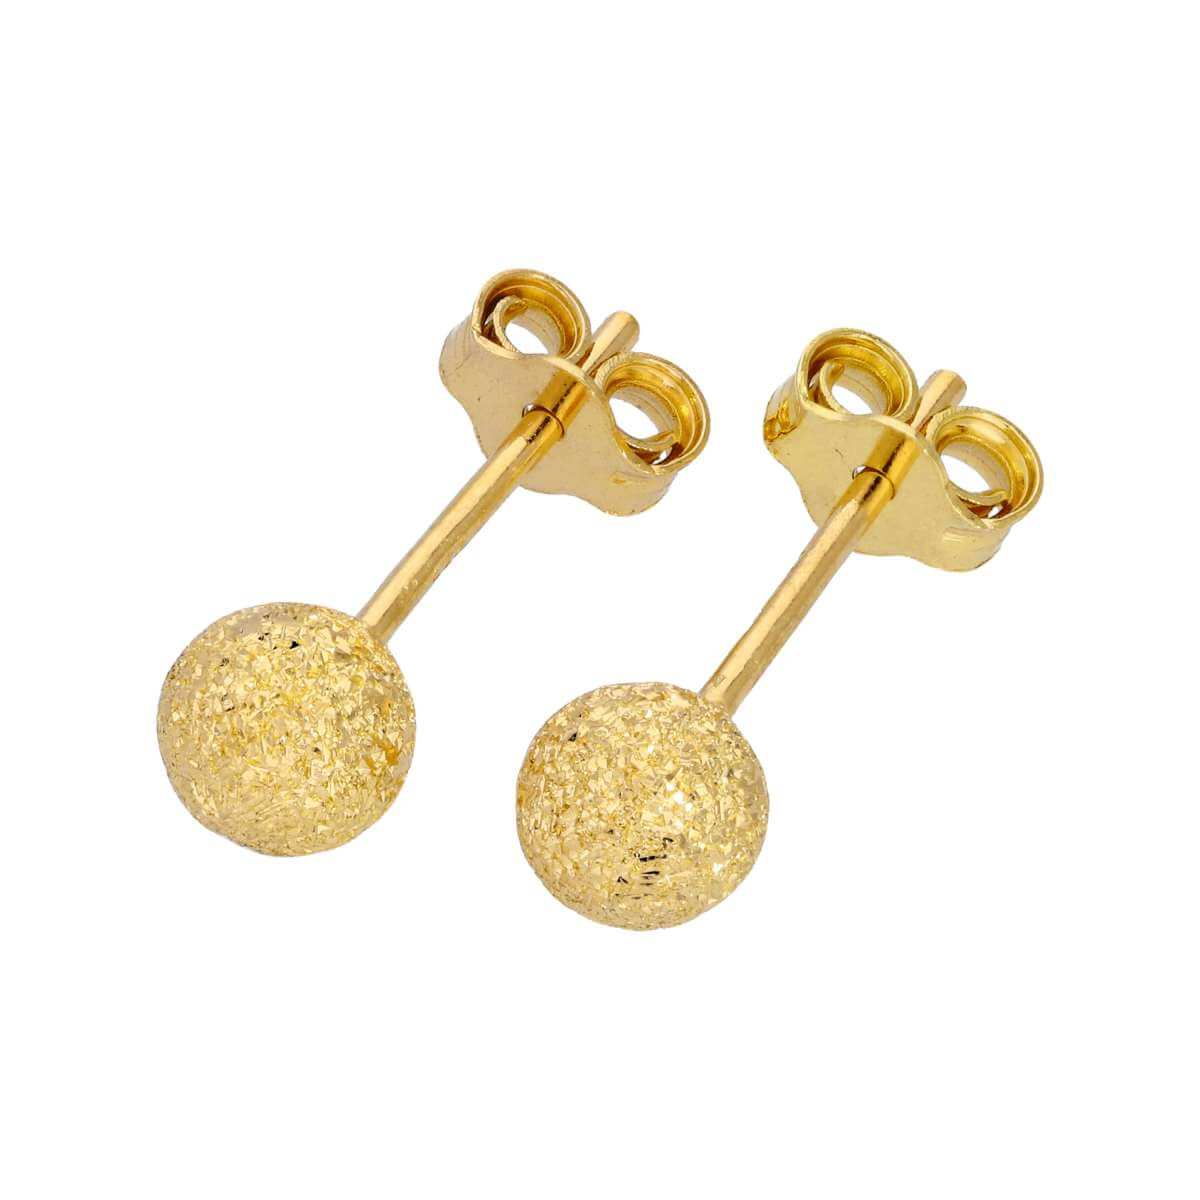 Gold Plated Frosted Sterling Silver Ball Stud Earrings 5mm